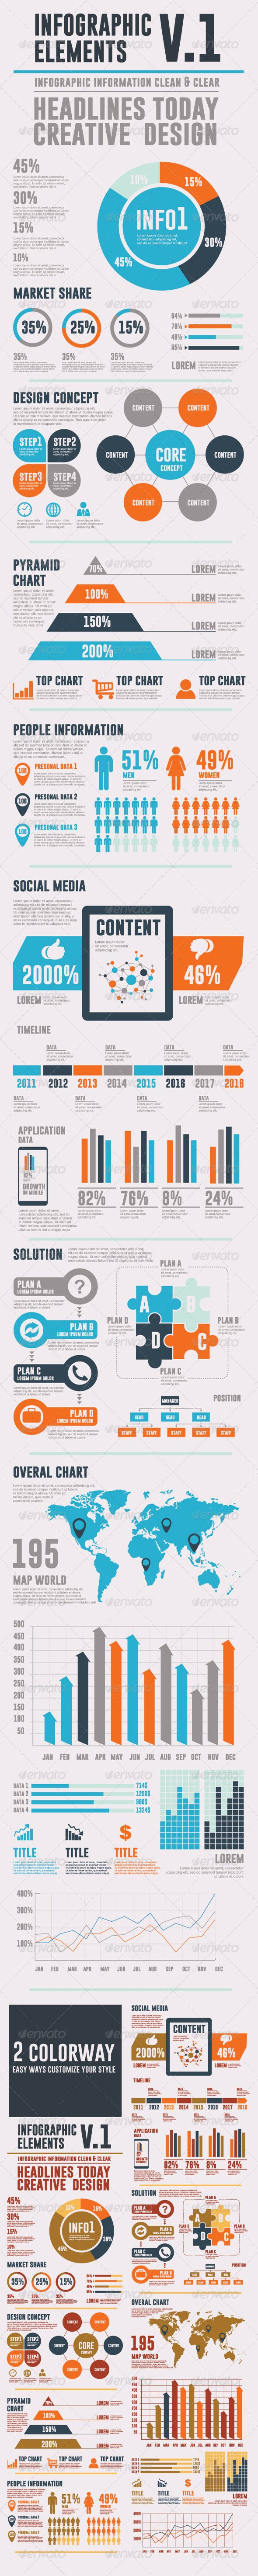 Infographic Elements V.1 business, chart, conceptual, corporate, creative, data, diagram, display, element, graph, icon, infographic, information, layout, line graph, market, modern, pie, presentation, process, project, retro, shape, social network, statistics, symbol, template, timeline, vector, world map, Infographic Elements V.1